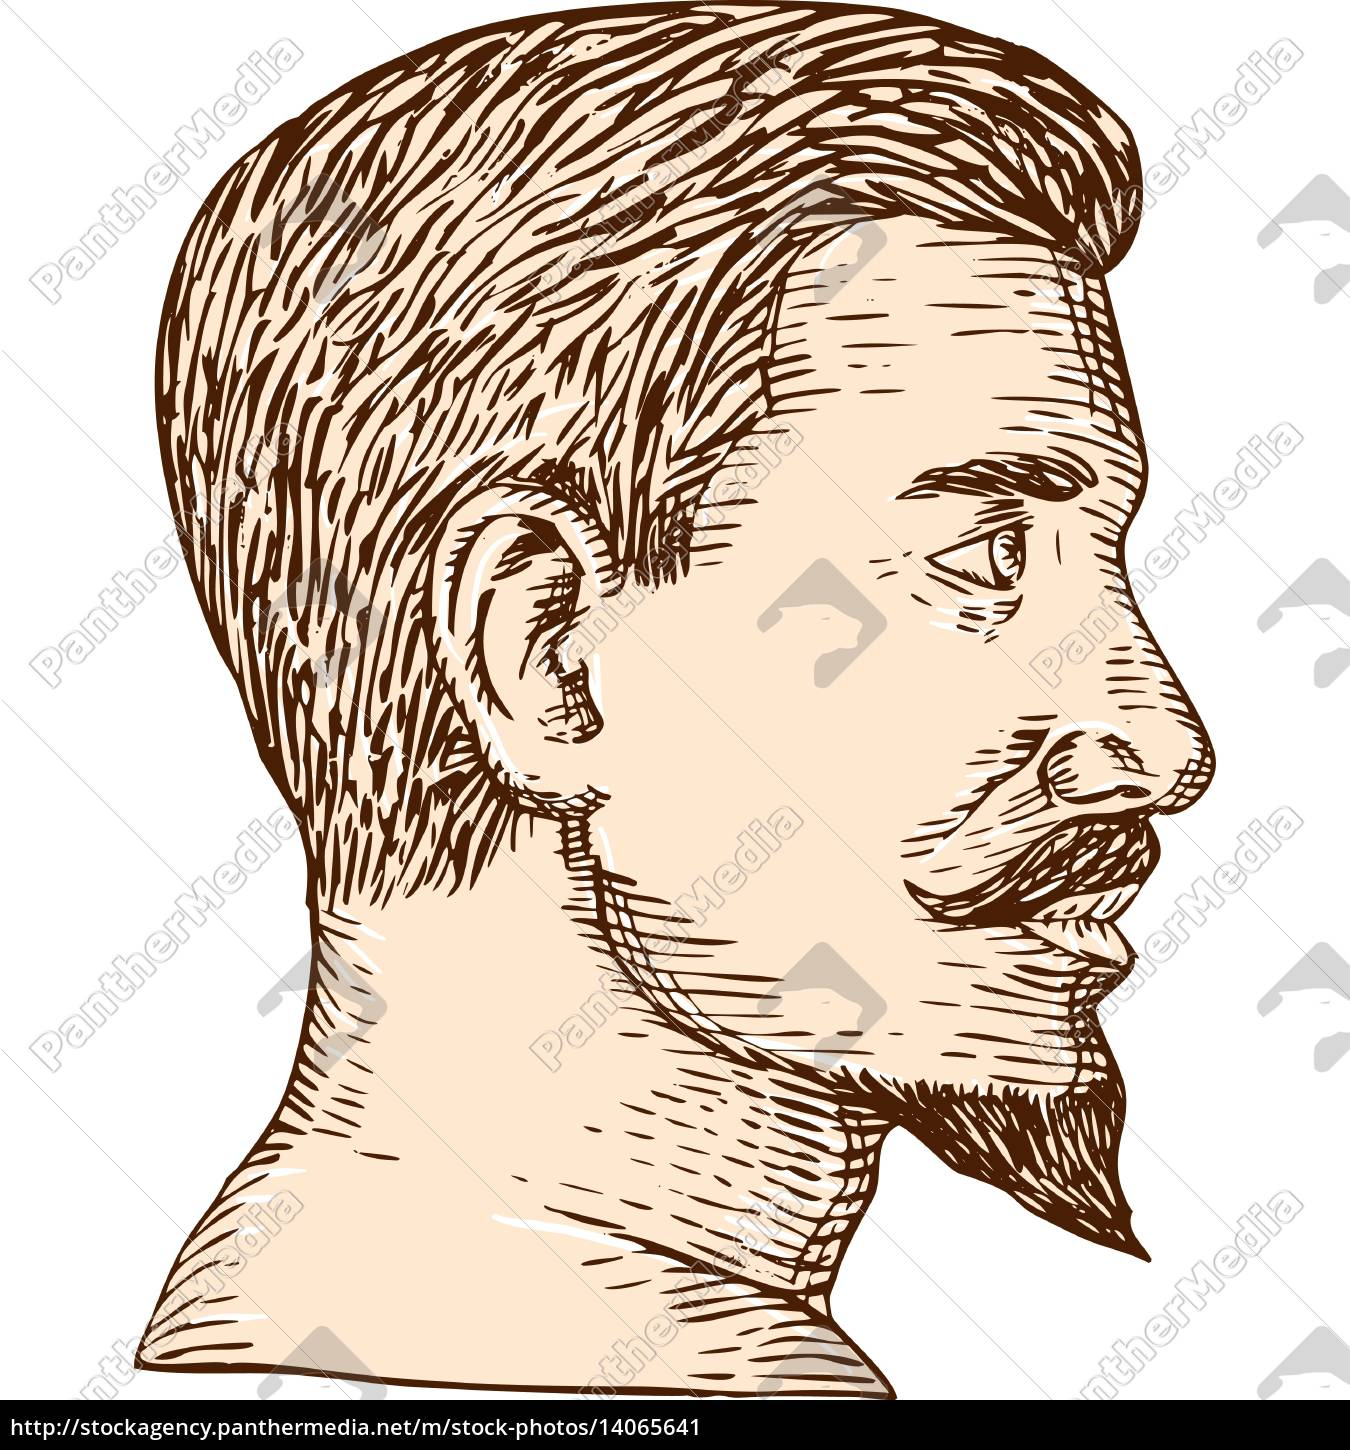 male, goatee, side, view, etching - 14065641